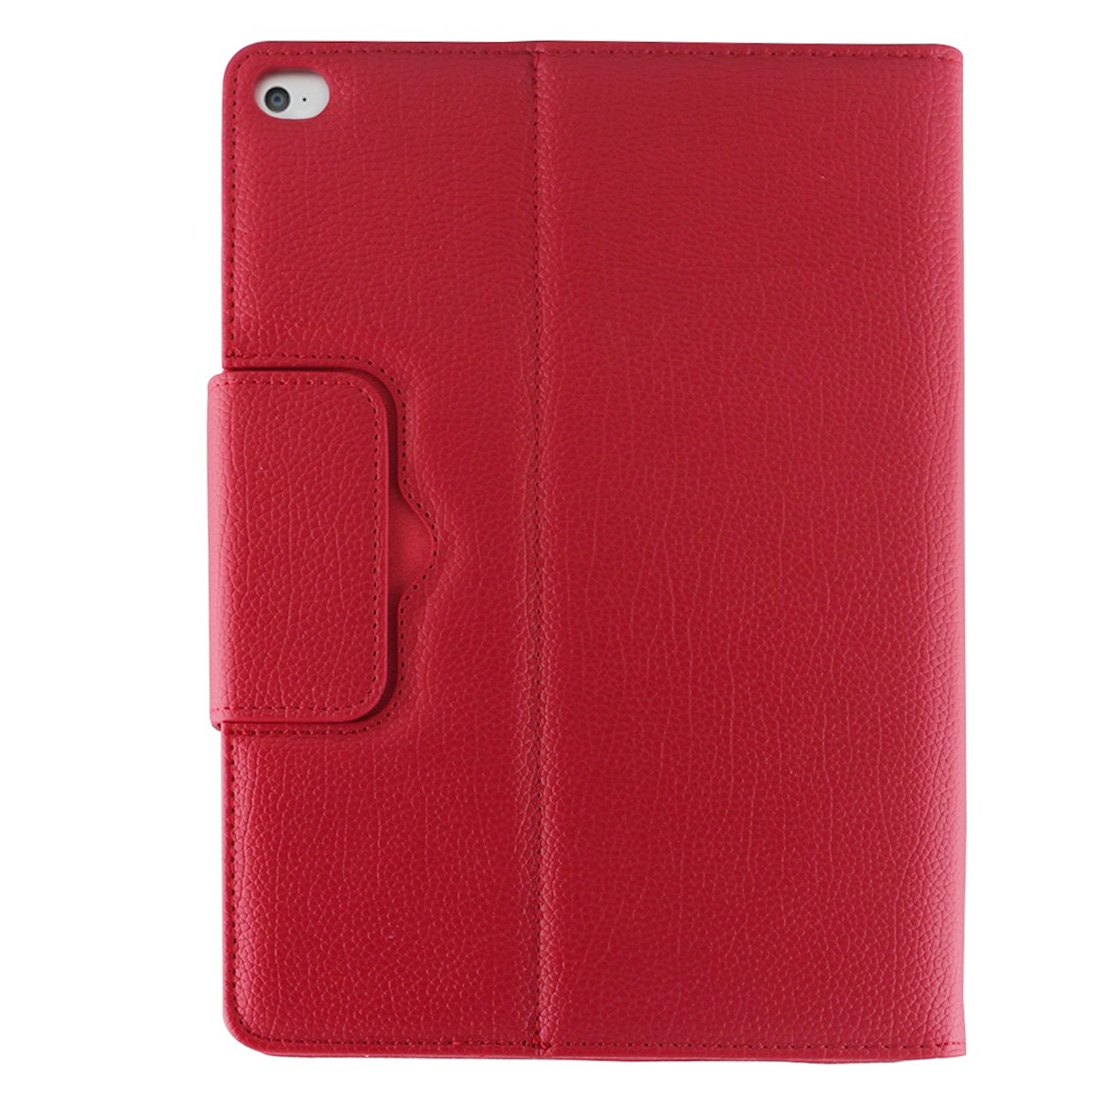 iPad Air 2 Case With Keyboard For iPad Air 2, Leather Case With Bluetooth & Auto/Sleep (Red)